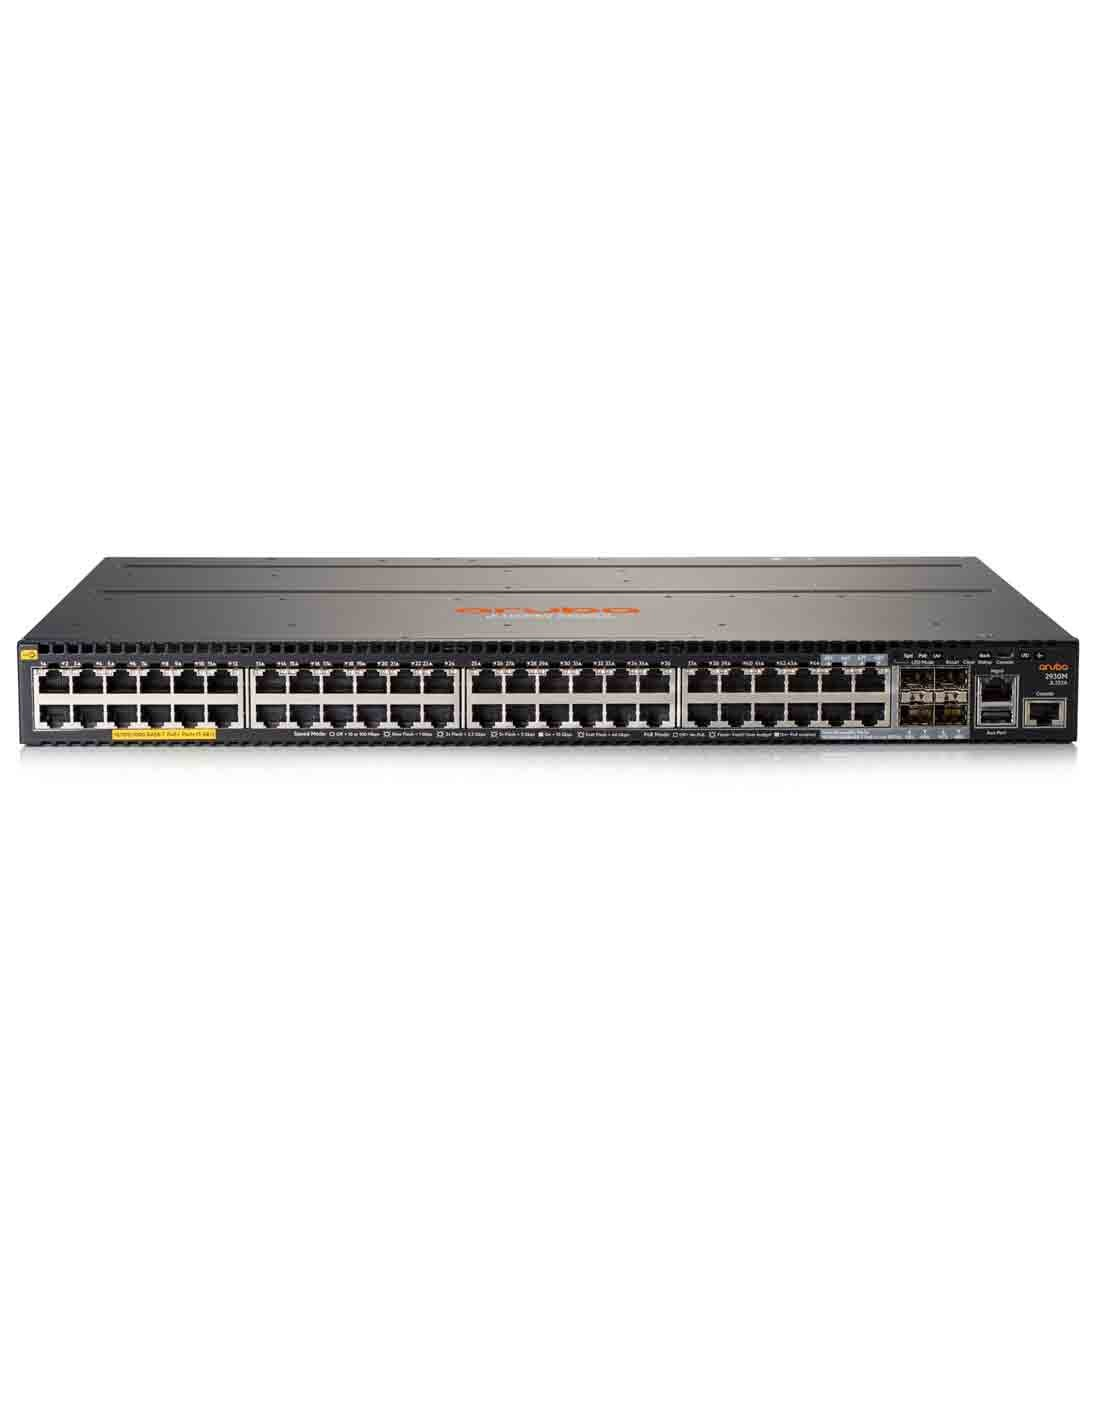 Aruba 2930M 48G PoE+ 1-slot Switch JL322A at a cheap price and free delivery in Dubai